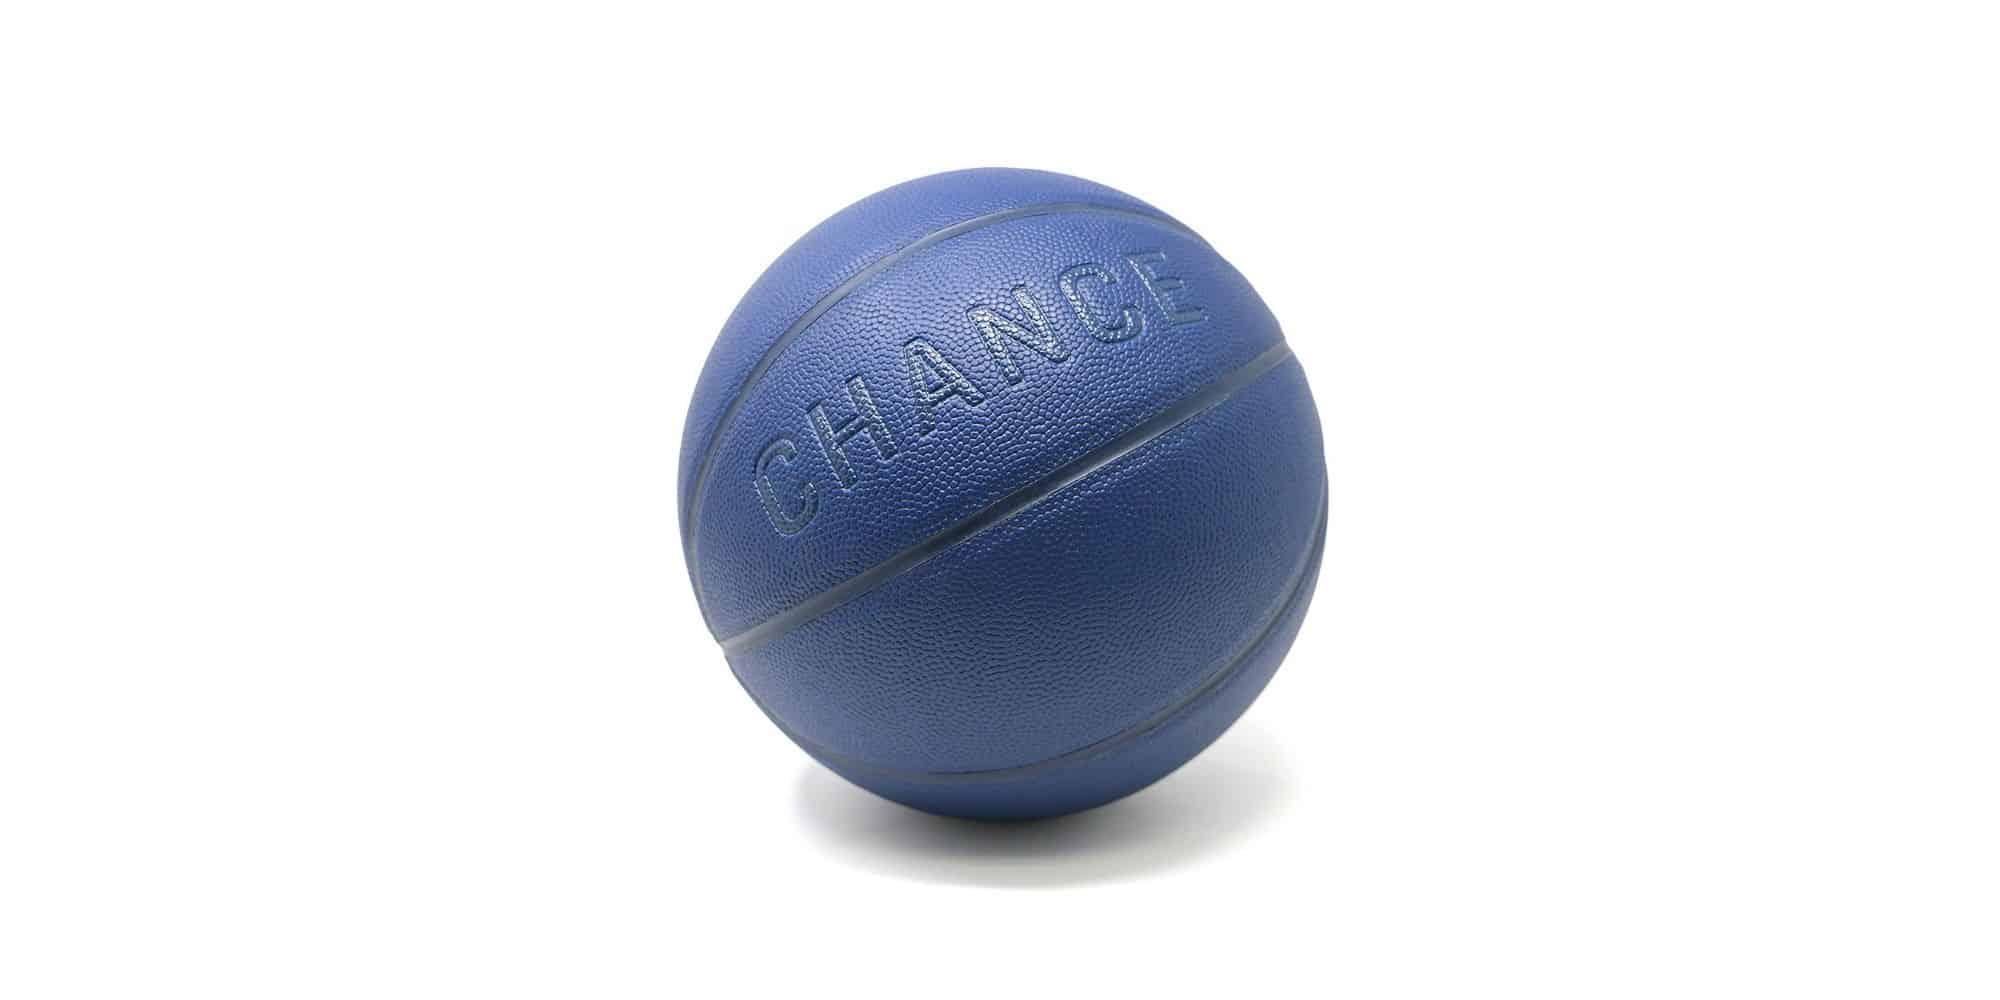 featured image for chance premium leather basketball review